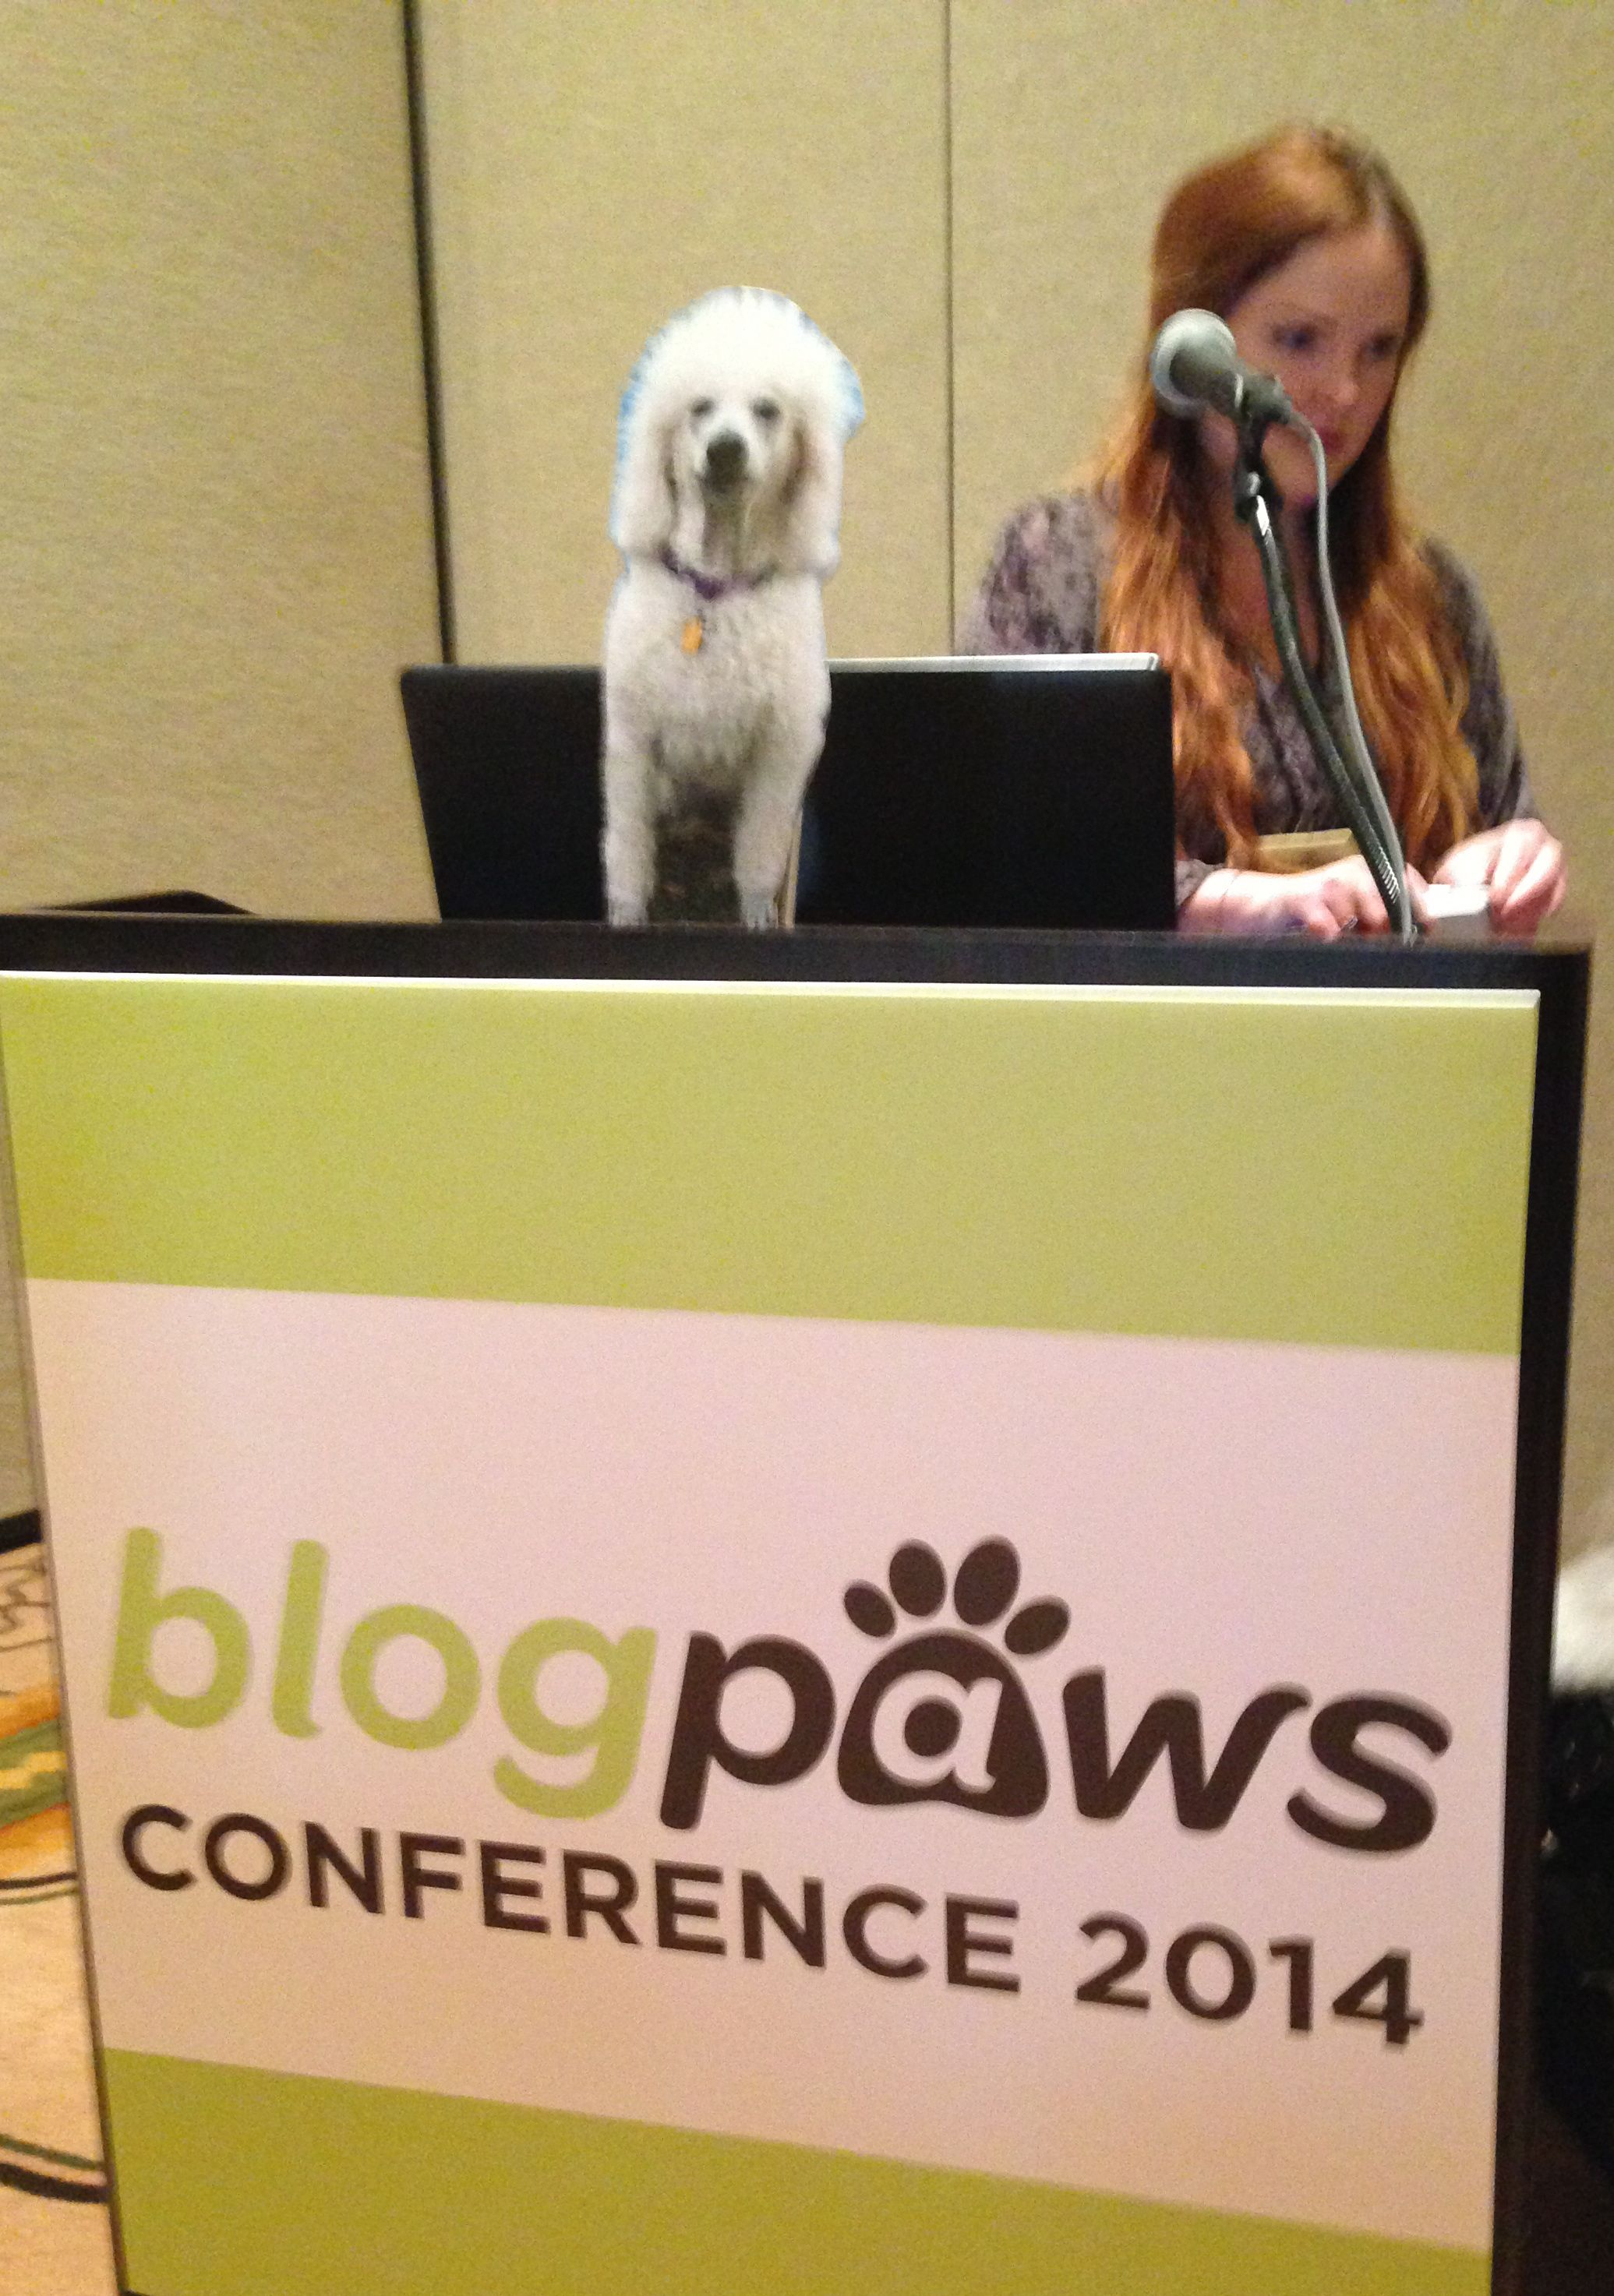 After the Pinterest presentation, @Carma Poodale Allen will expound on the Heartbreak of Being Flat at #BlogPaws. @Snout School: Teaching Vets Social Media